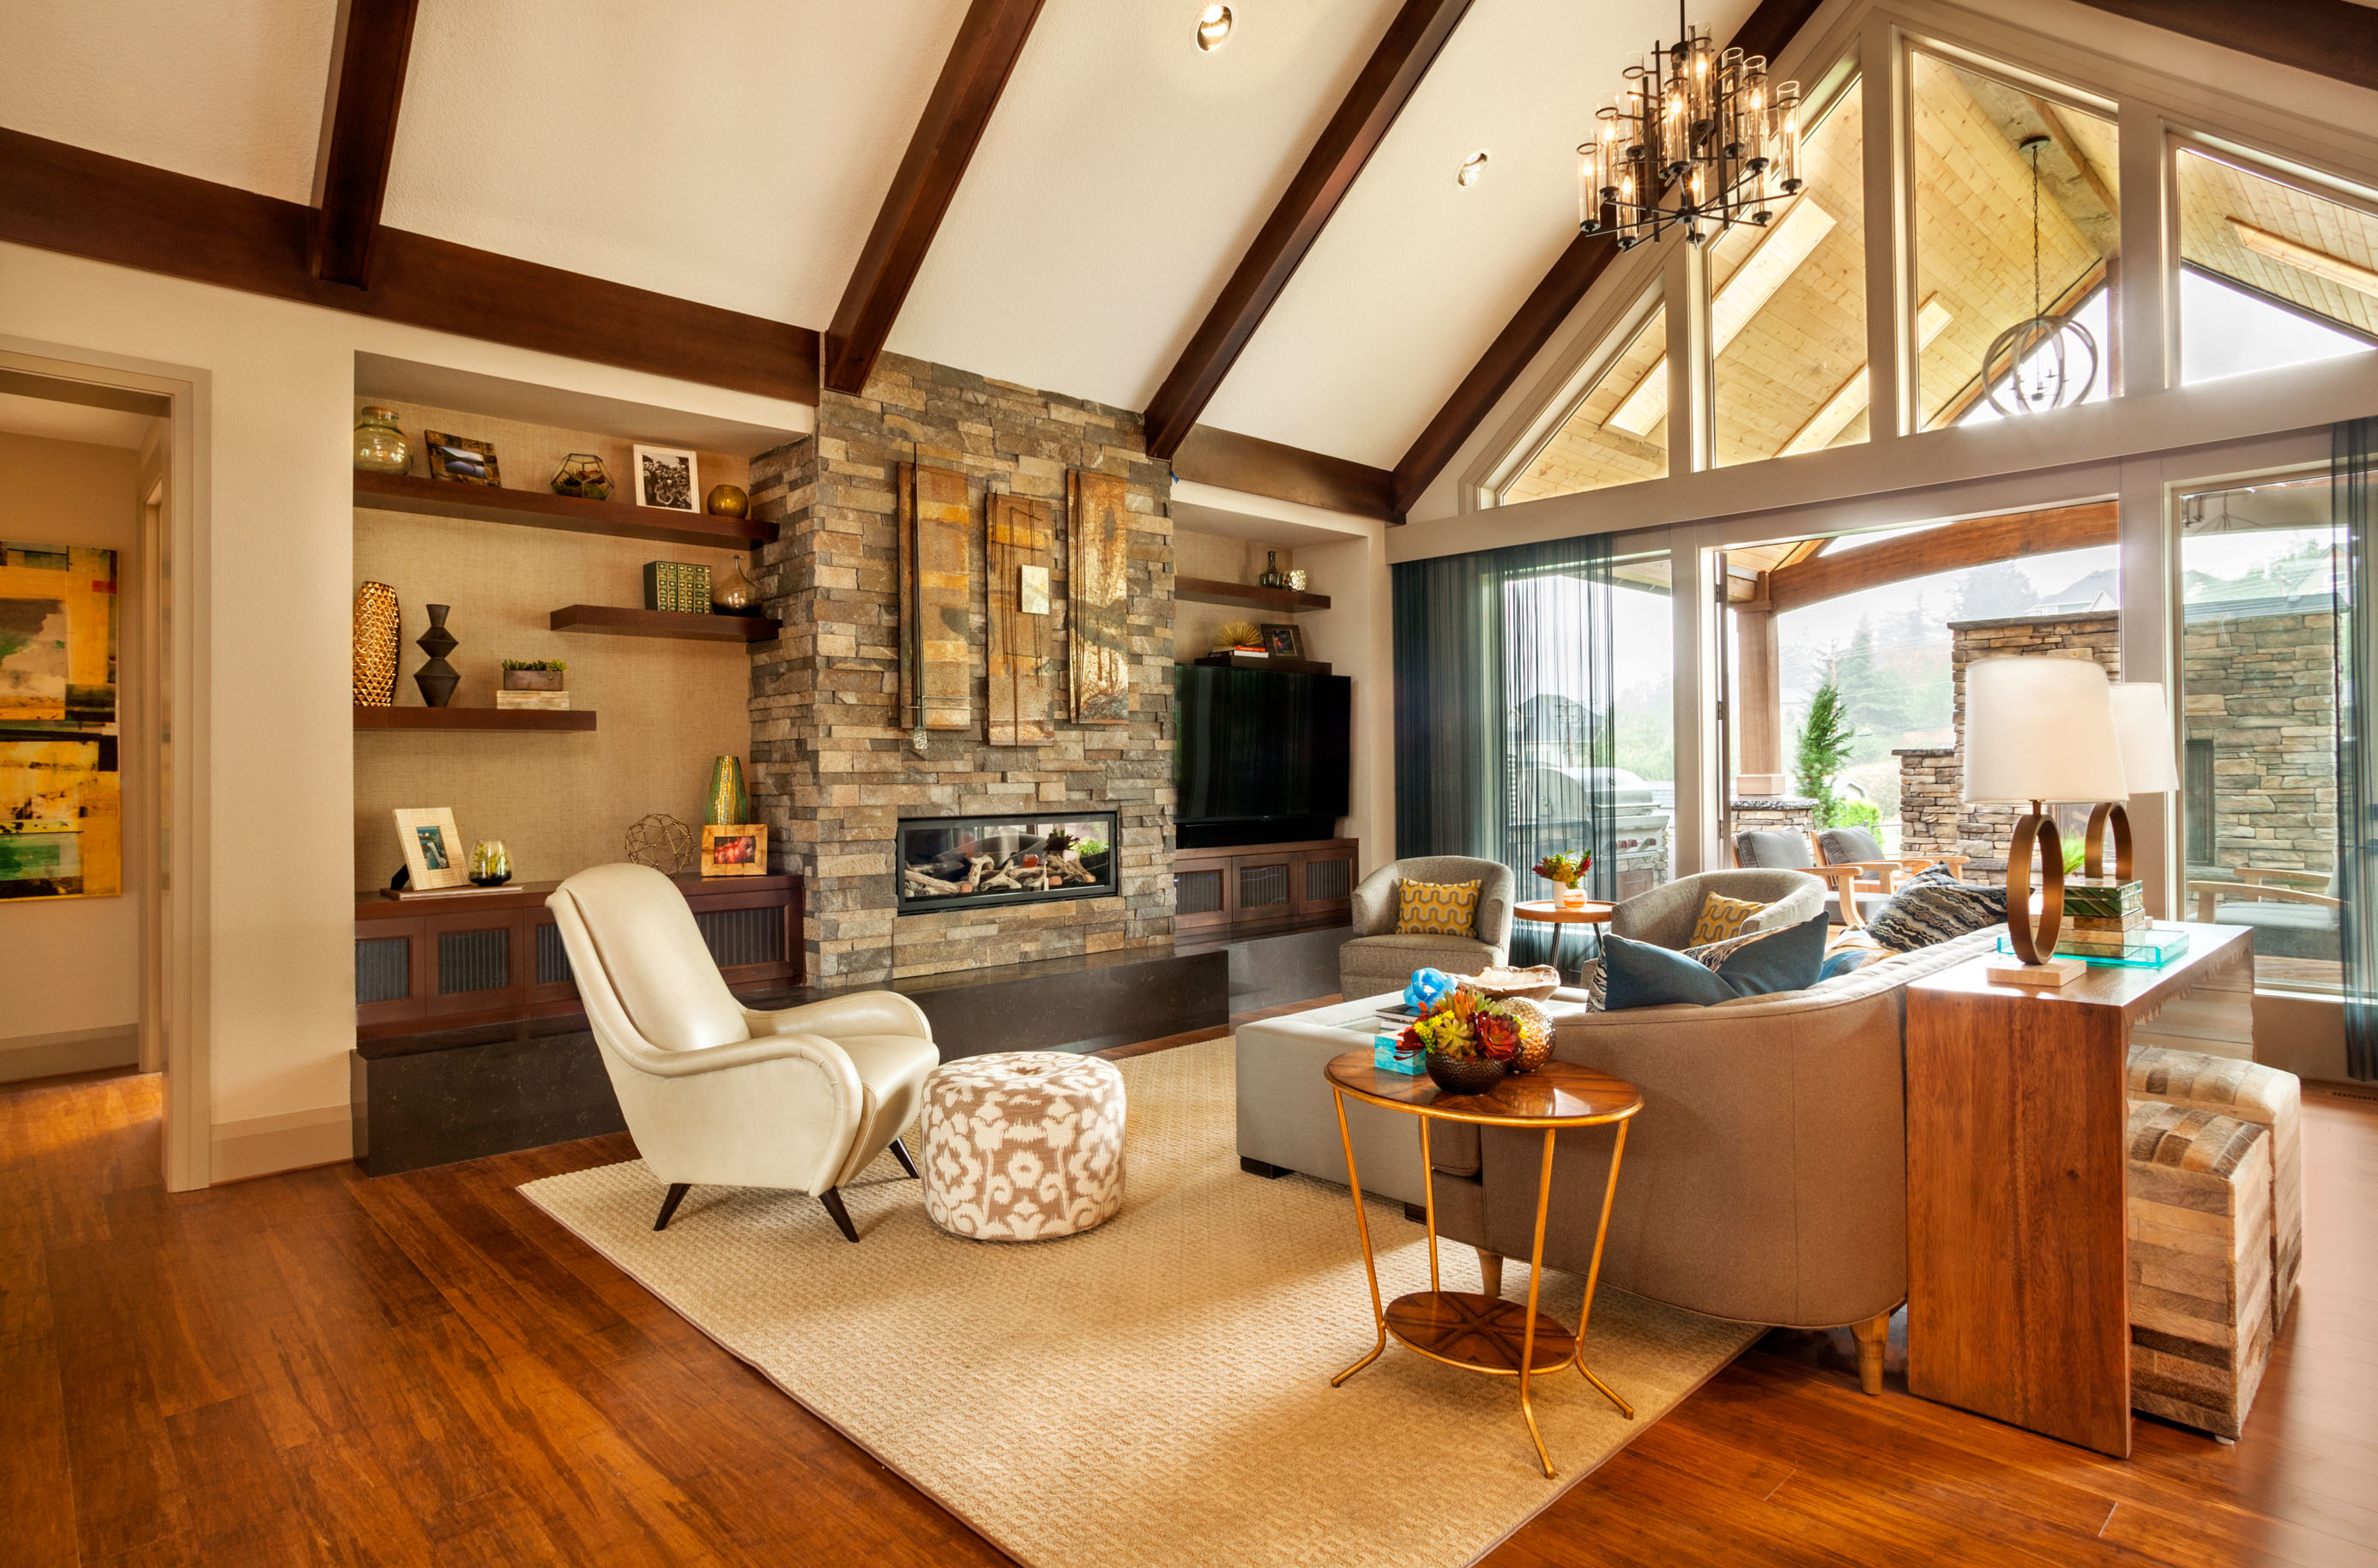 The family room features carefully selectioned decor